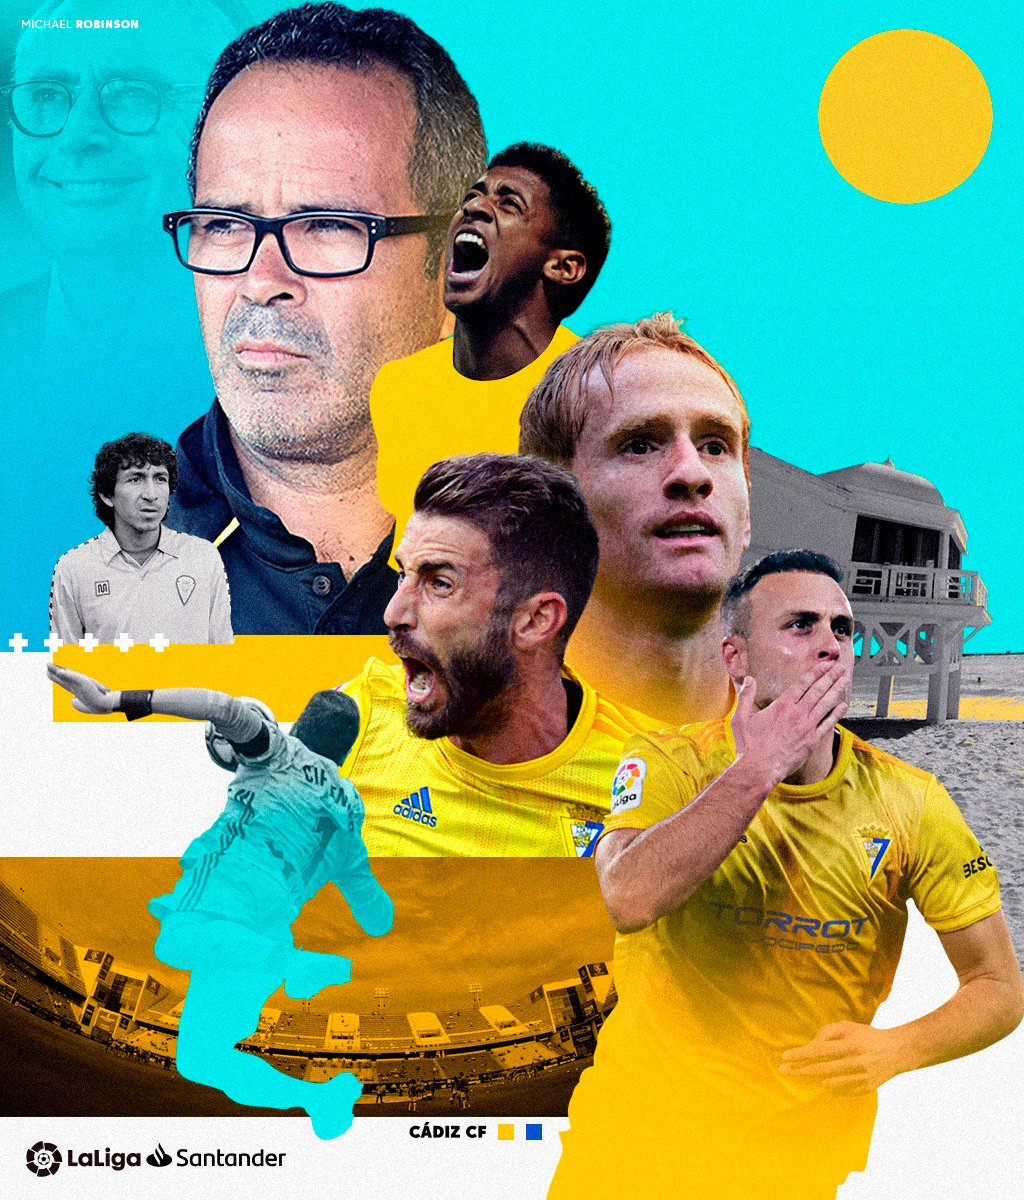 Cadiz CF promoted to LaLiga Santander